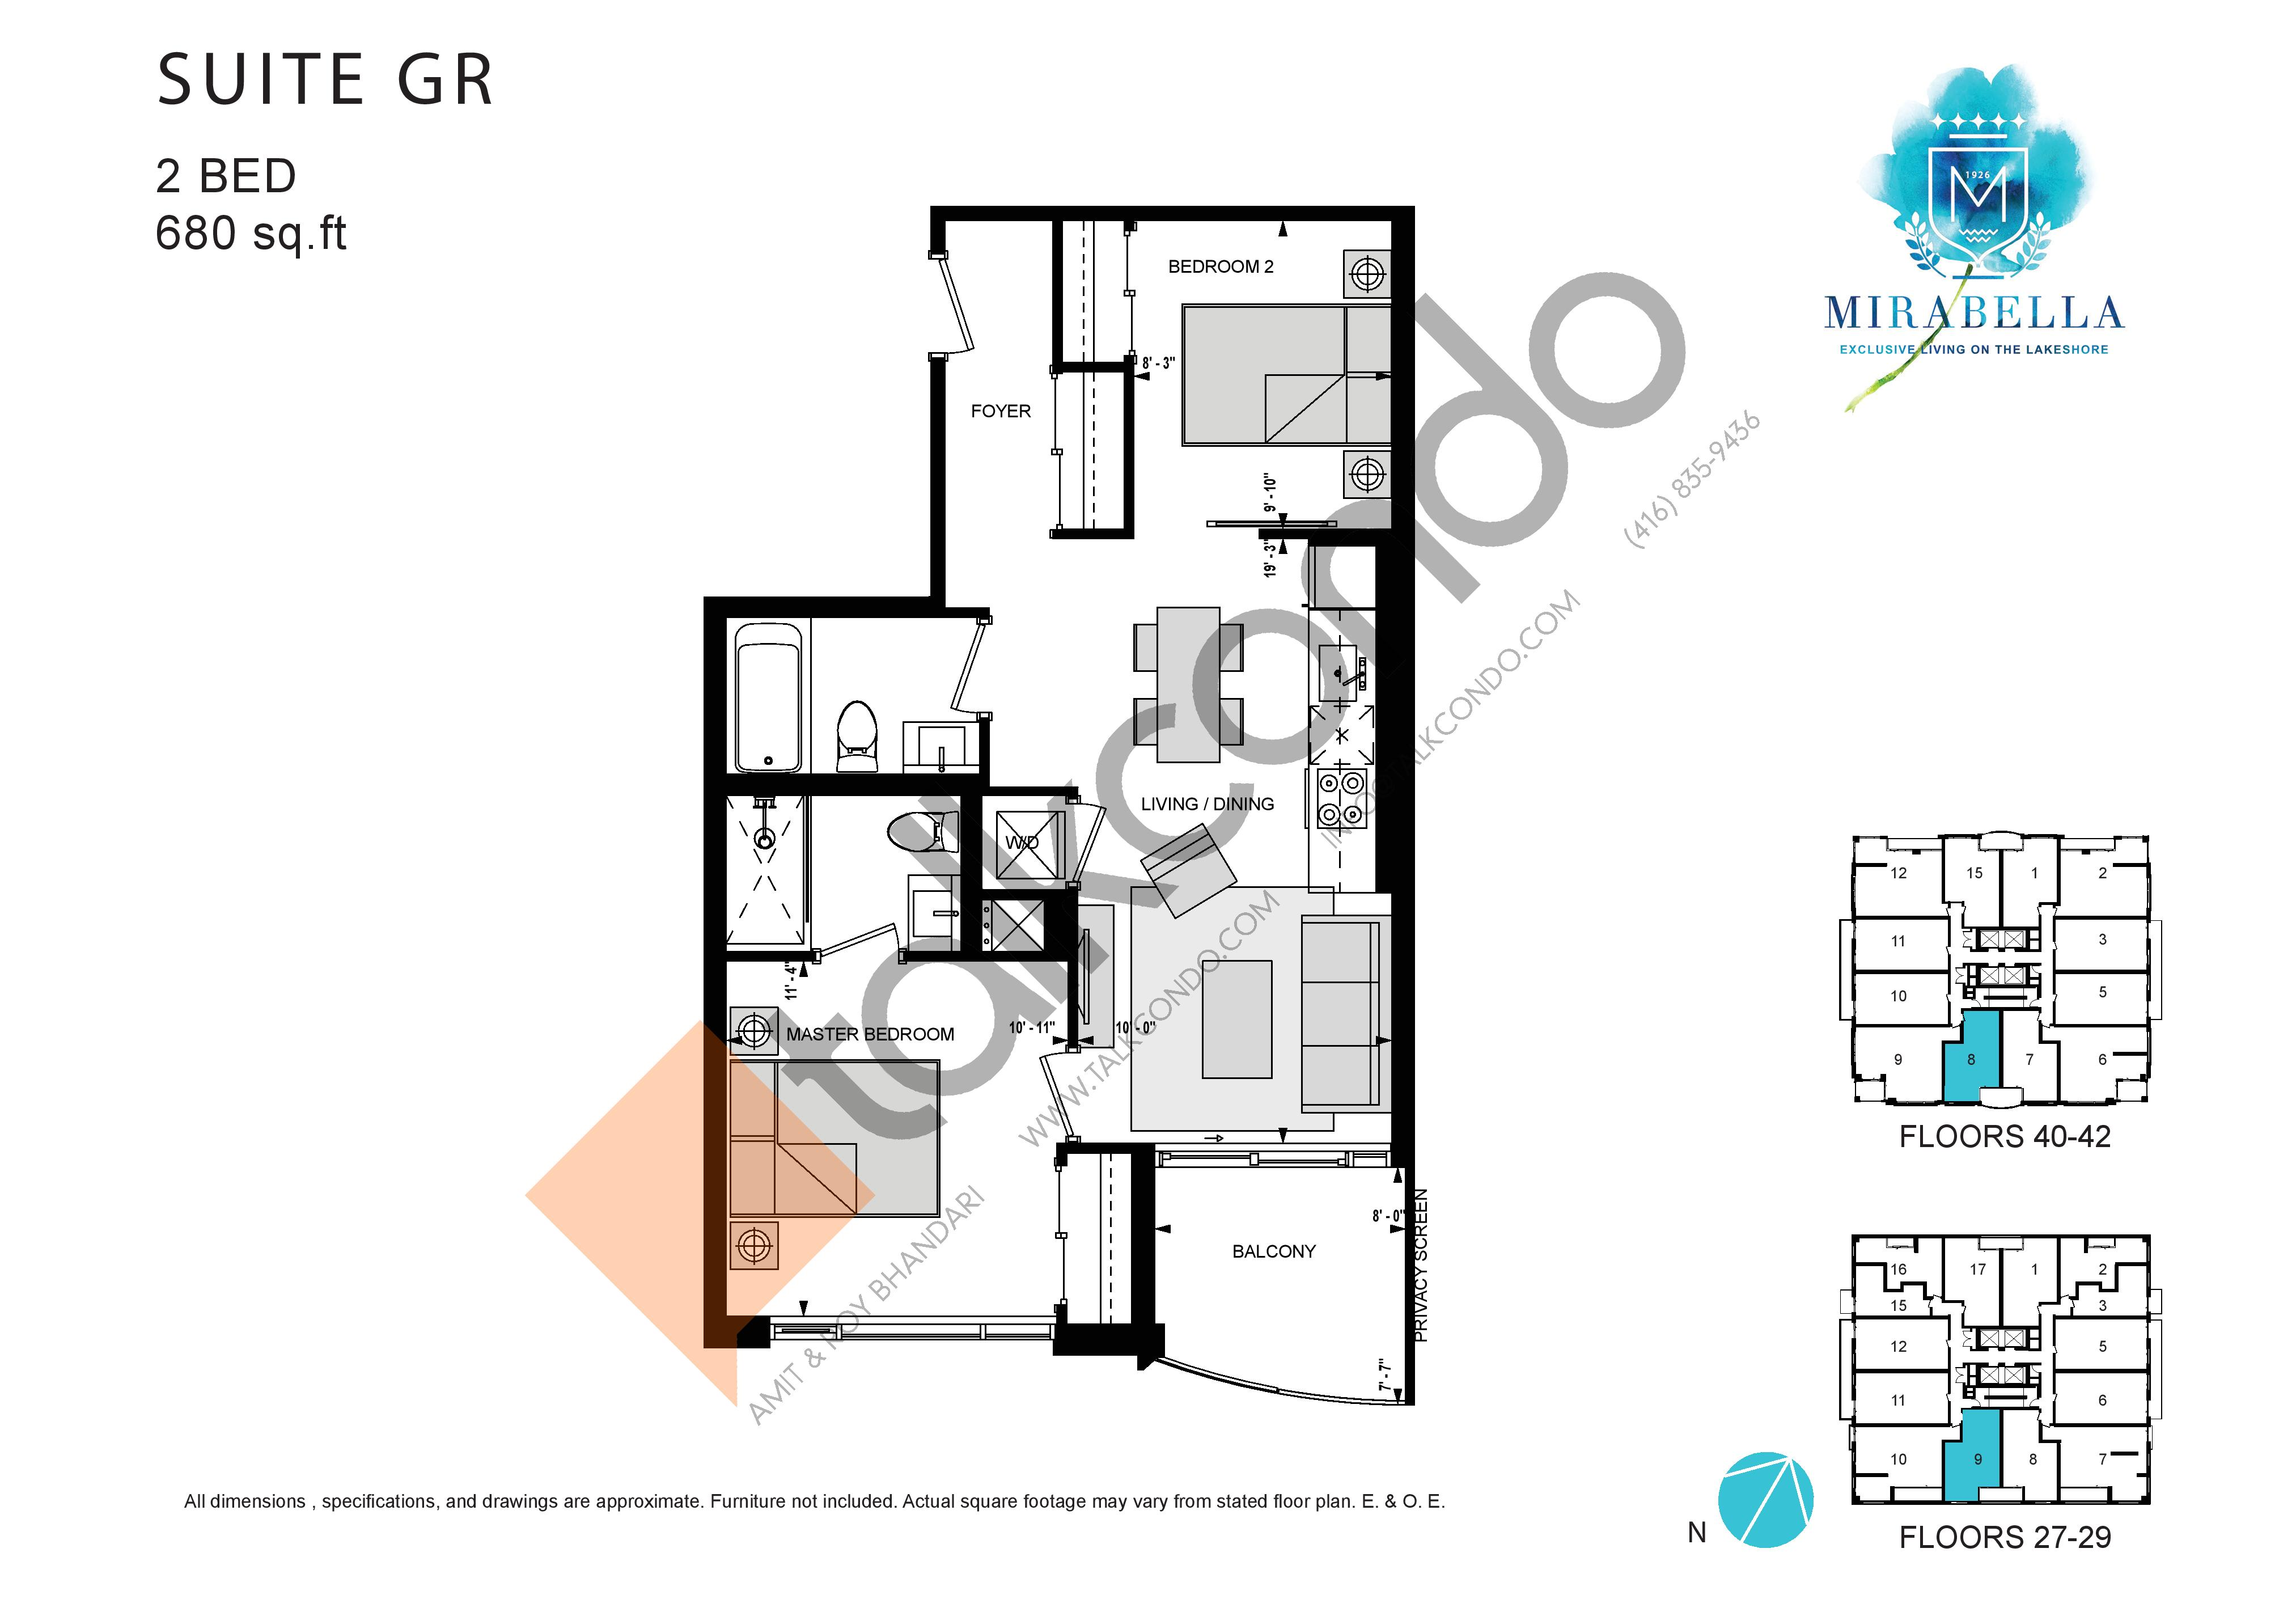 Suite GR Floor Plan at Mirabella Luxury Condos East Tower - 680 sq.ft